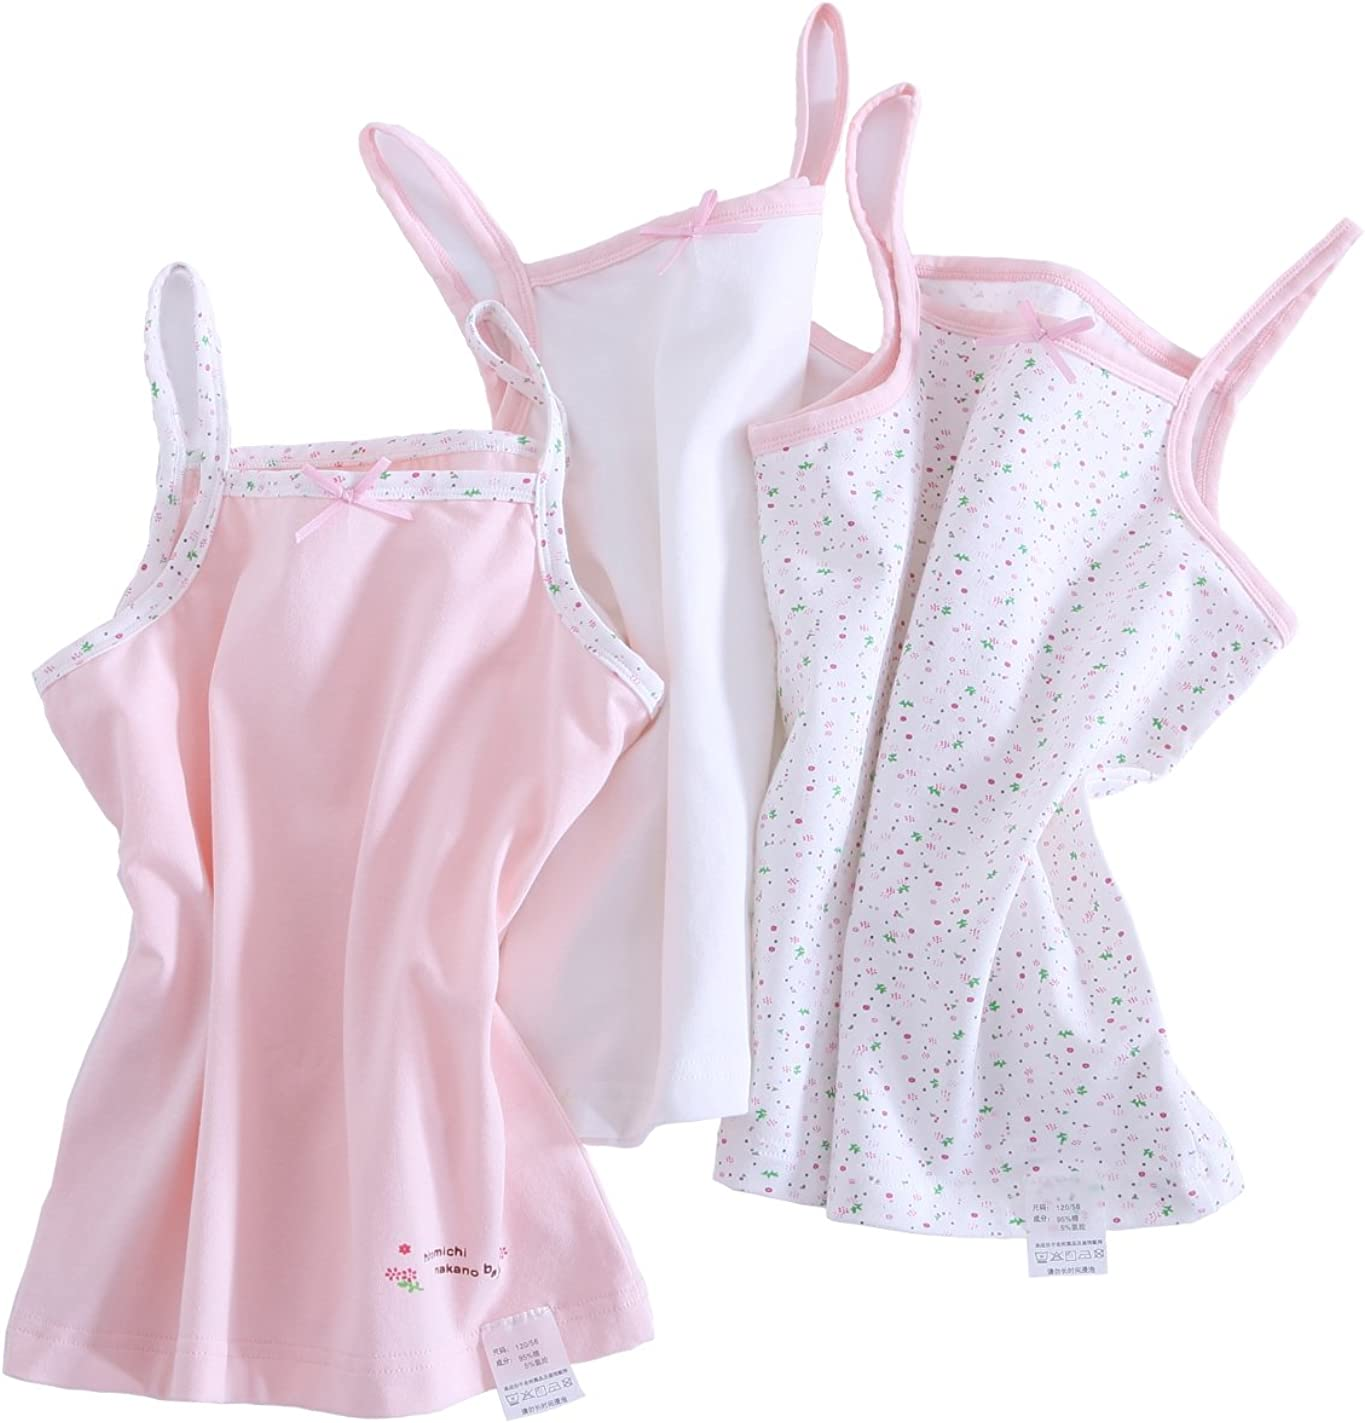 Kimocat Spaghetti Strap Camisole Charlotte Mall Tank Cot Toddler Tops for Girls Weekly update